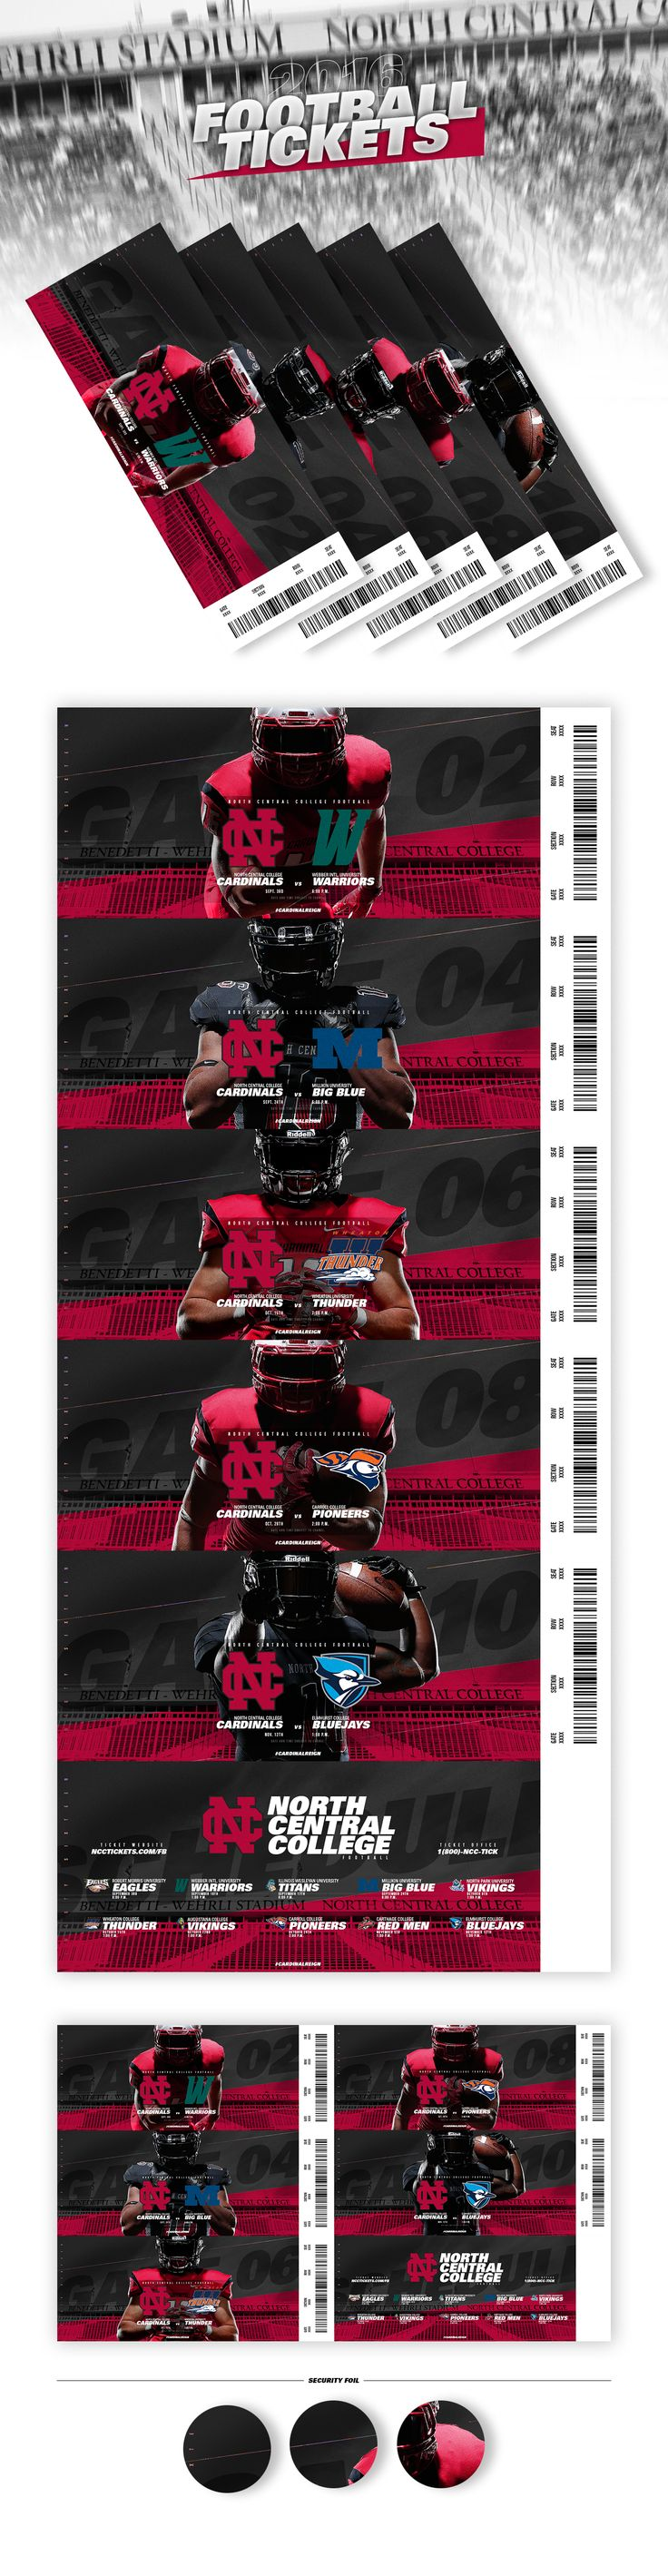 2016 North Central College Football Tickets on Behance